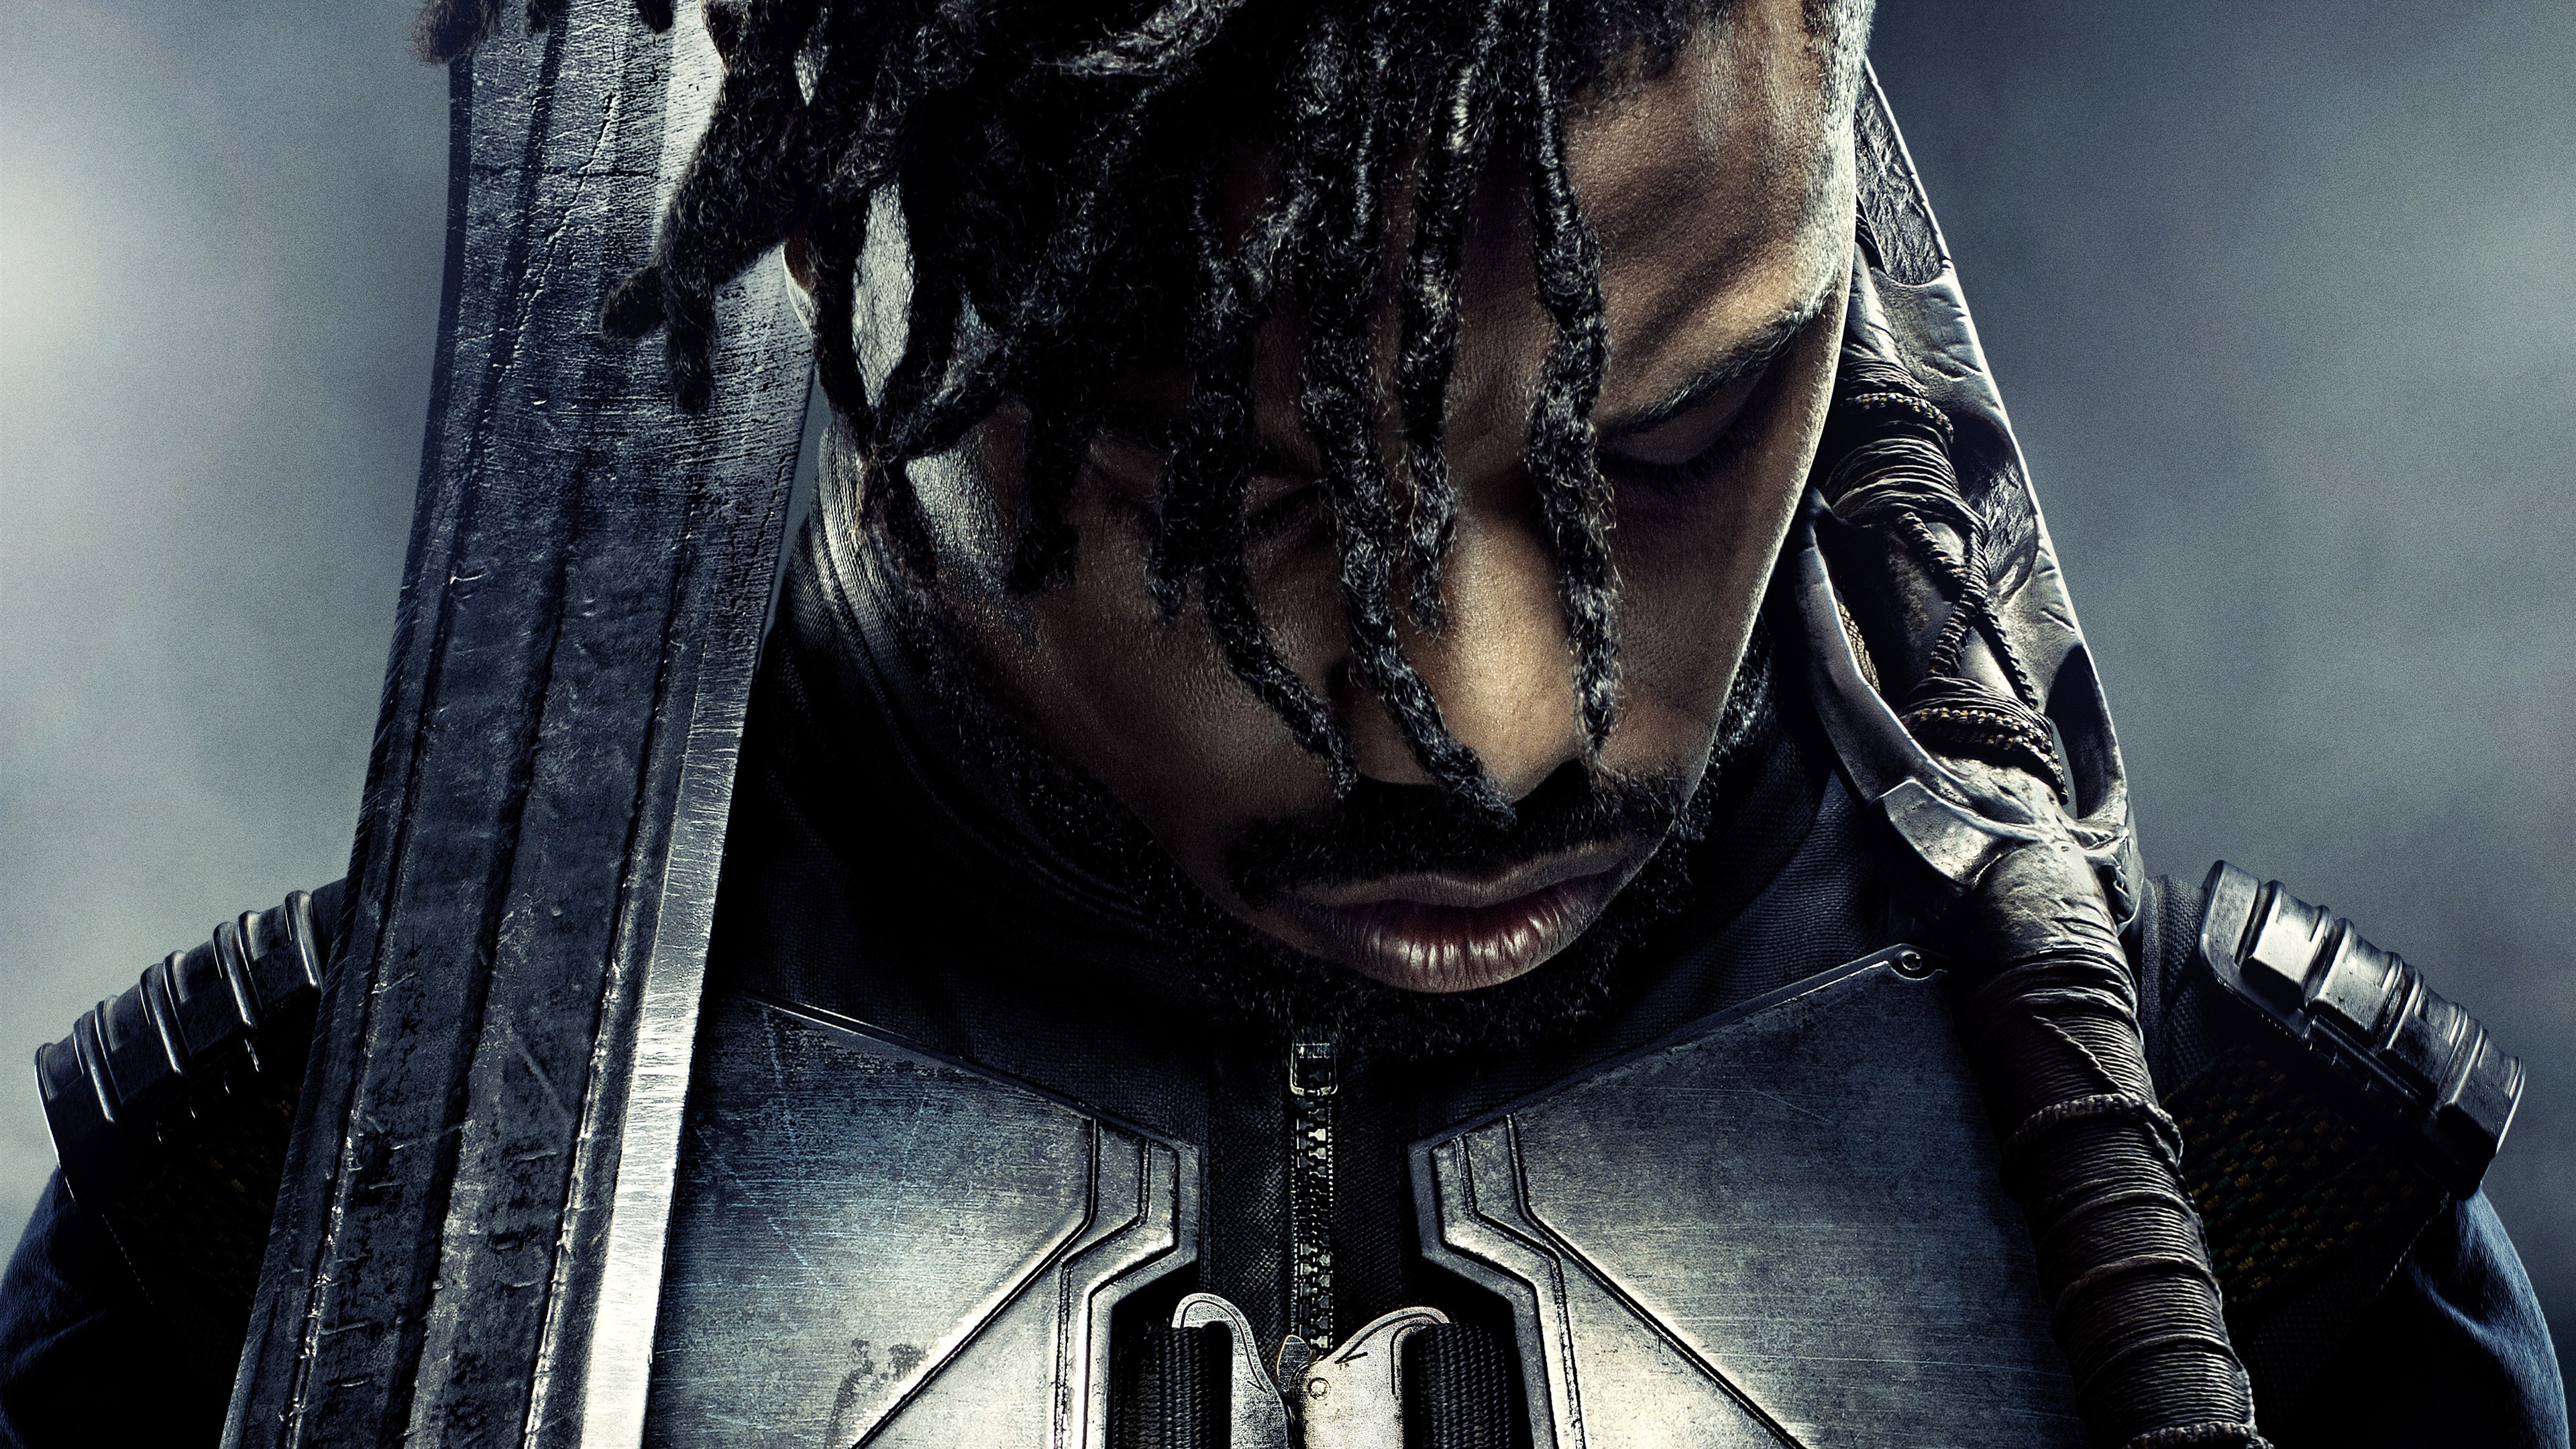 Michael B Jordan Black Panther 1242x2688 Iphone 11 Pro Xs Max Wallpaper Background Picture Image